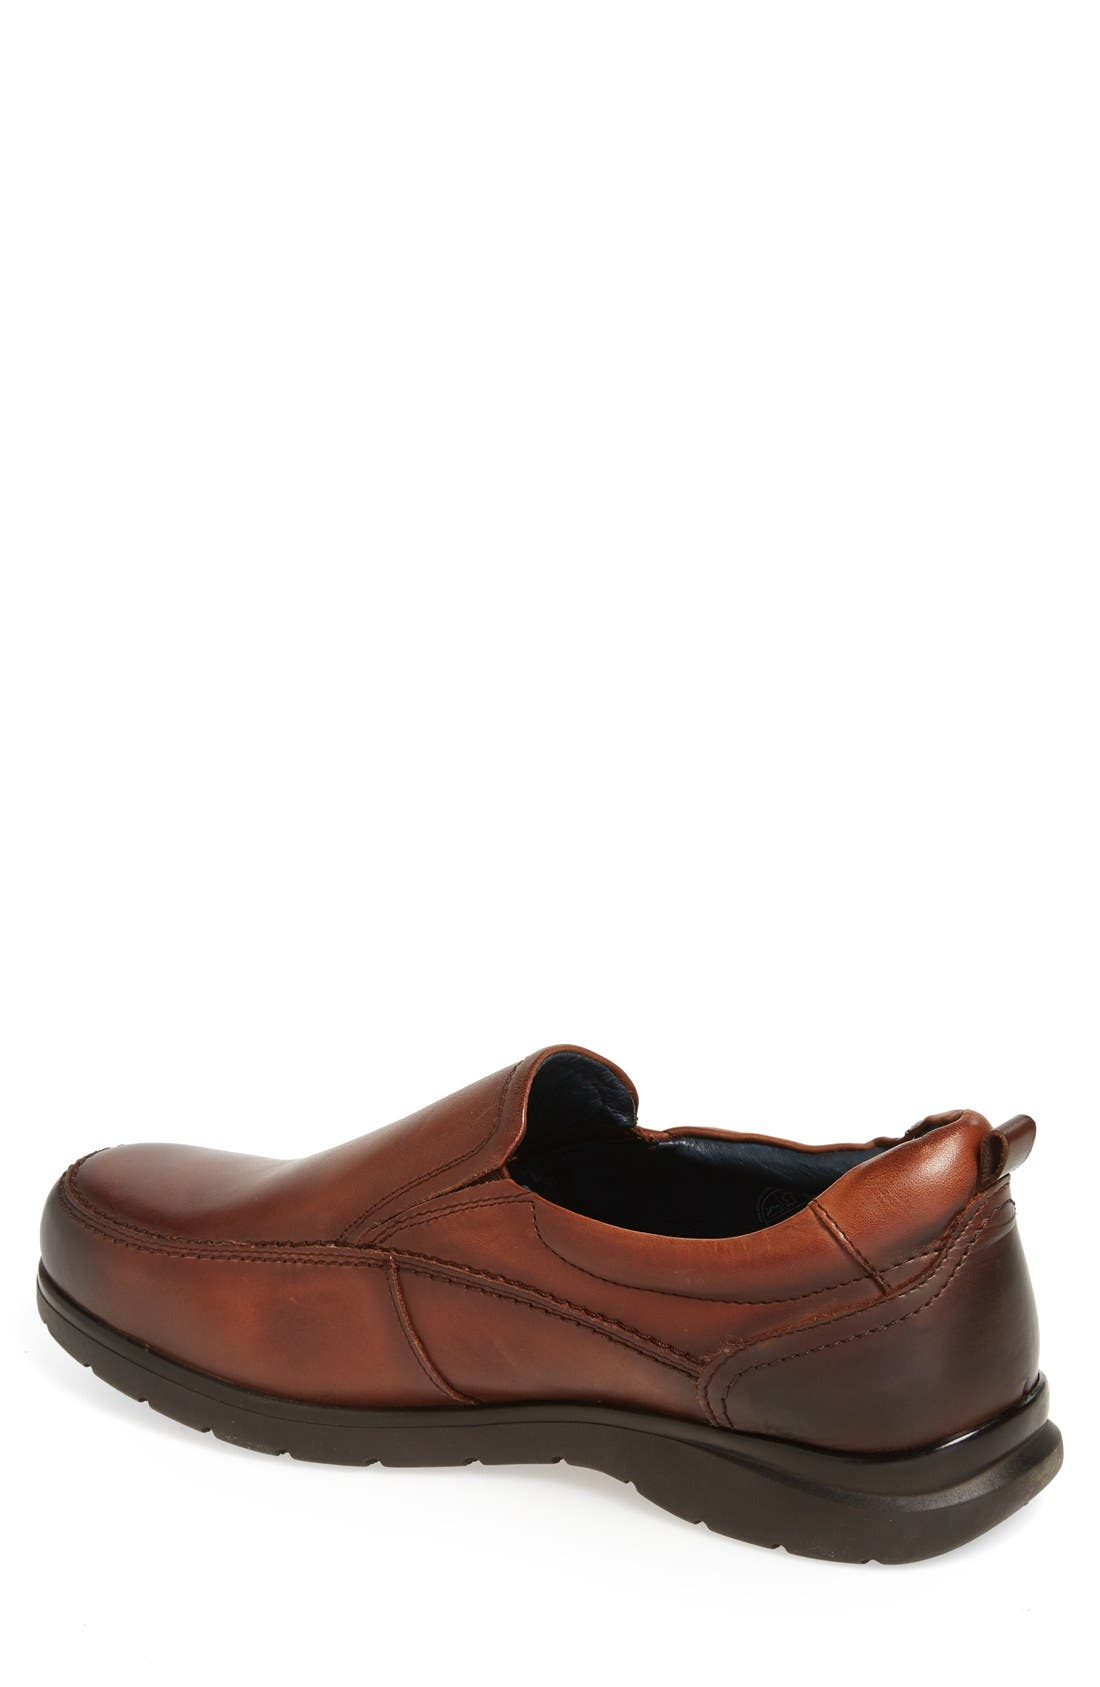 Alternate Image 2  - PIKOLINOS 'San Lorenzo' Slip-On (Men)